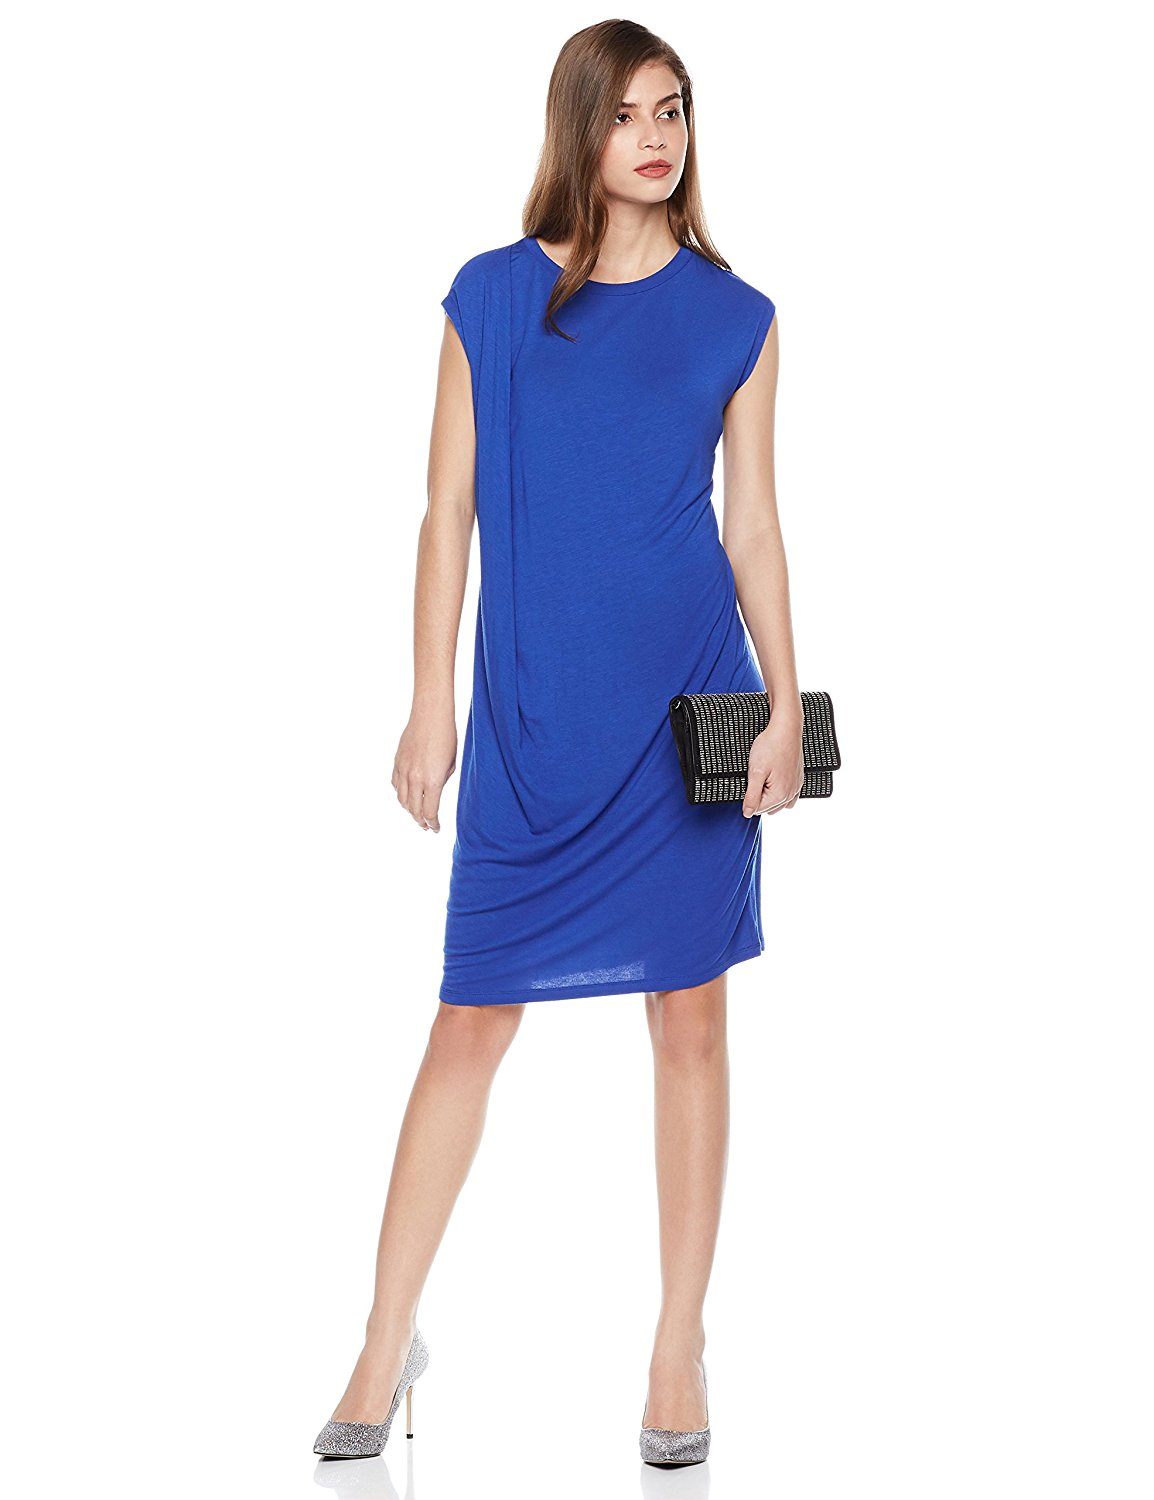 46dbcf5b675a4 Mariella Bella Drop Shoulder Knit Dress - $39.89